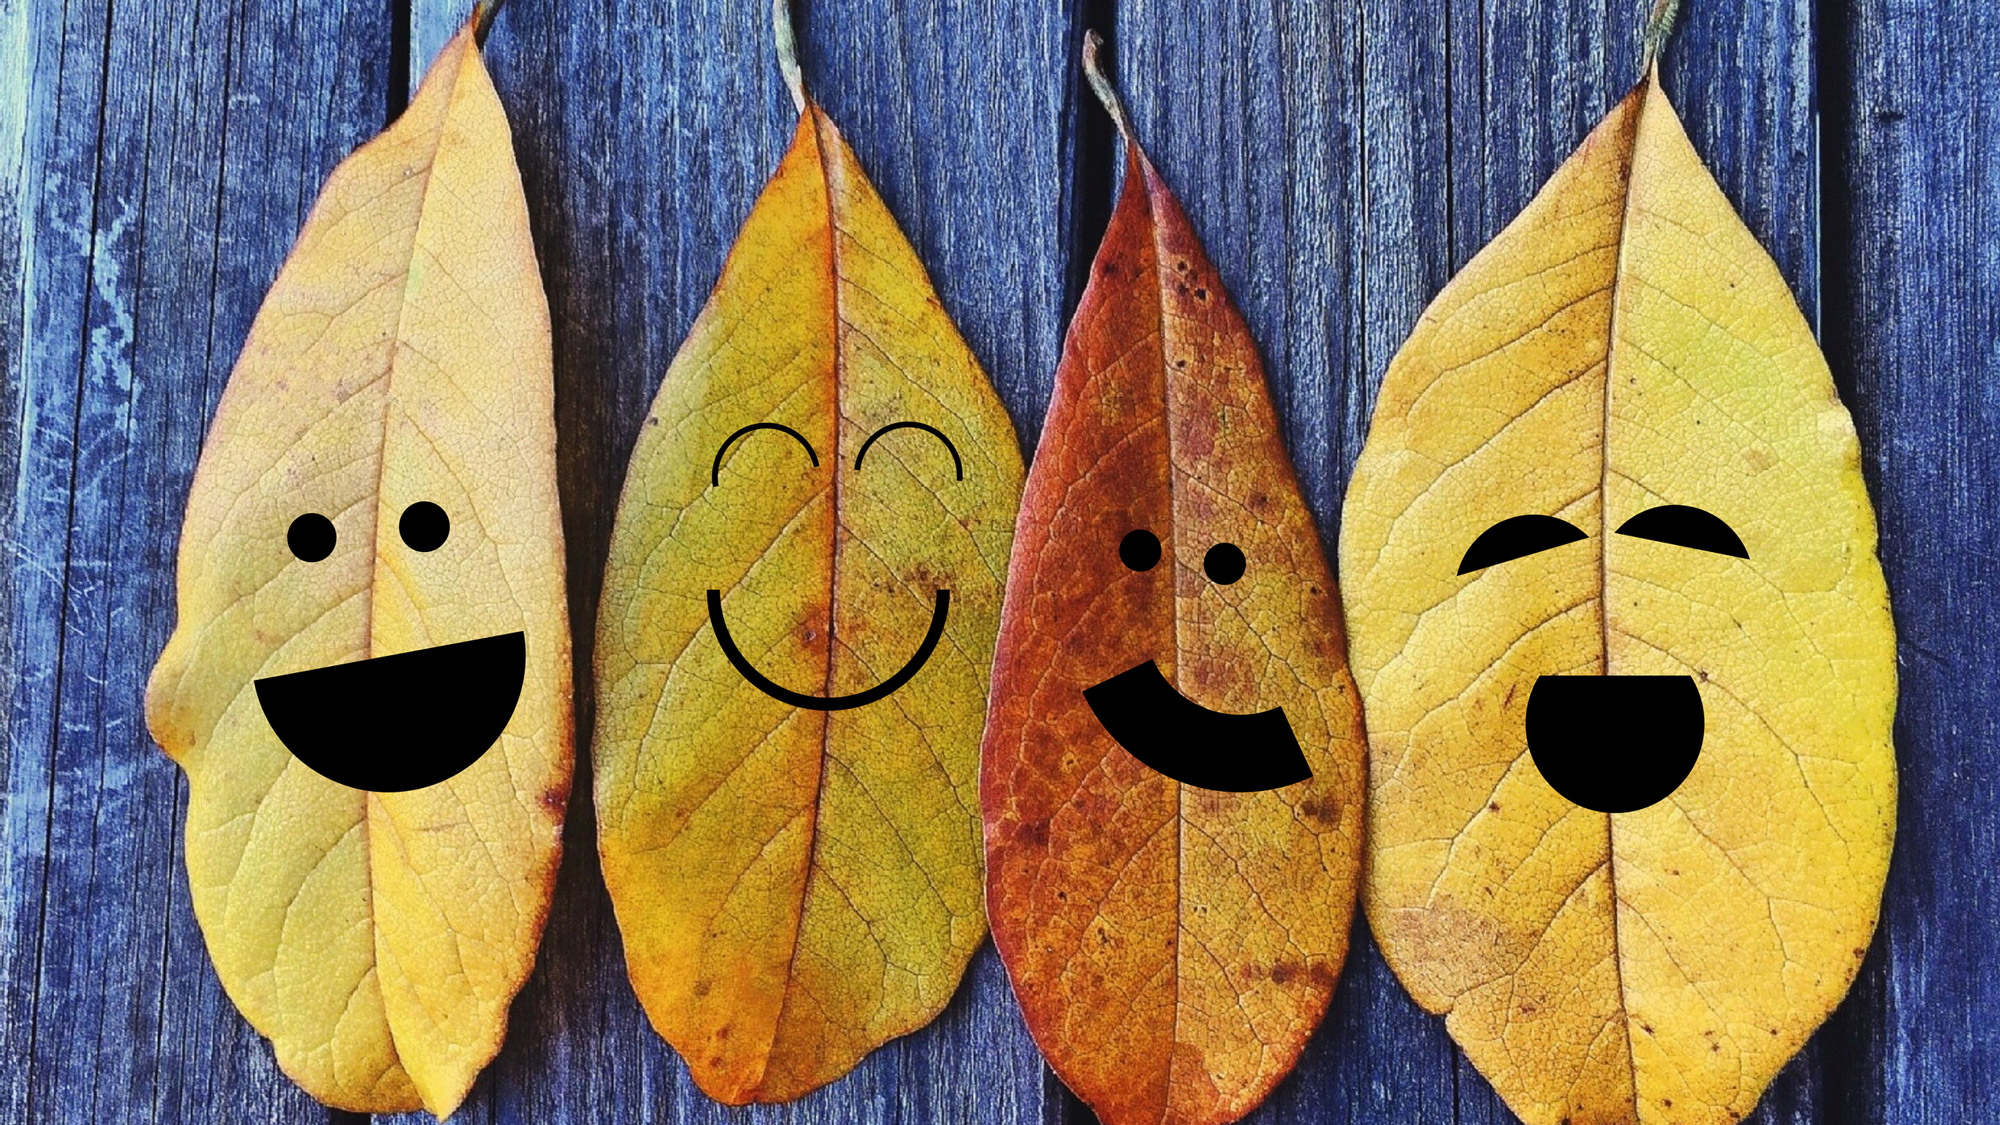 fall leaves with smiley faces